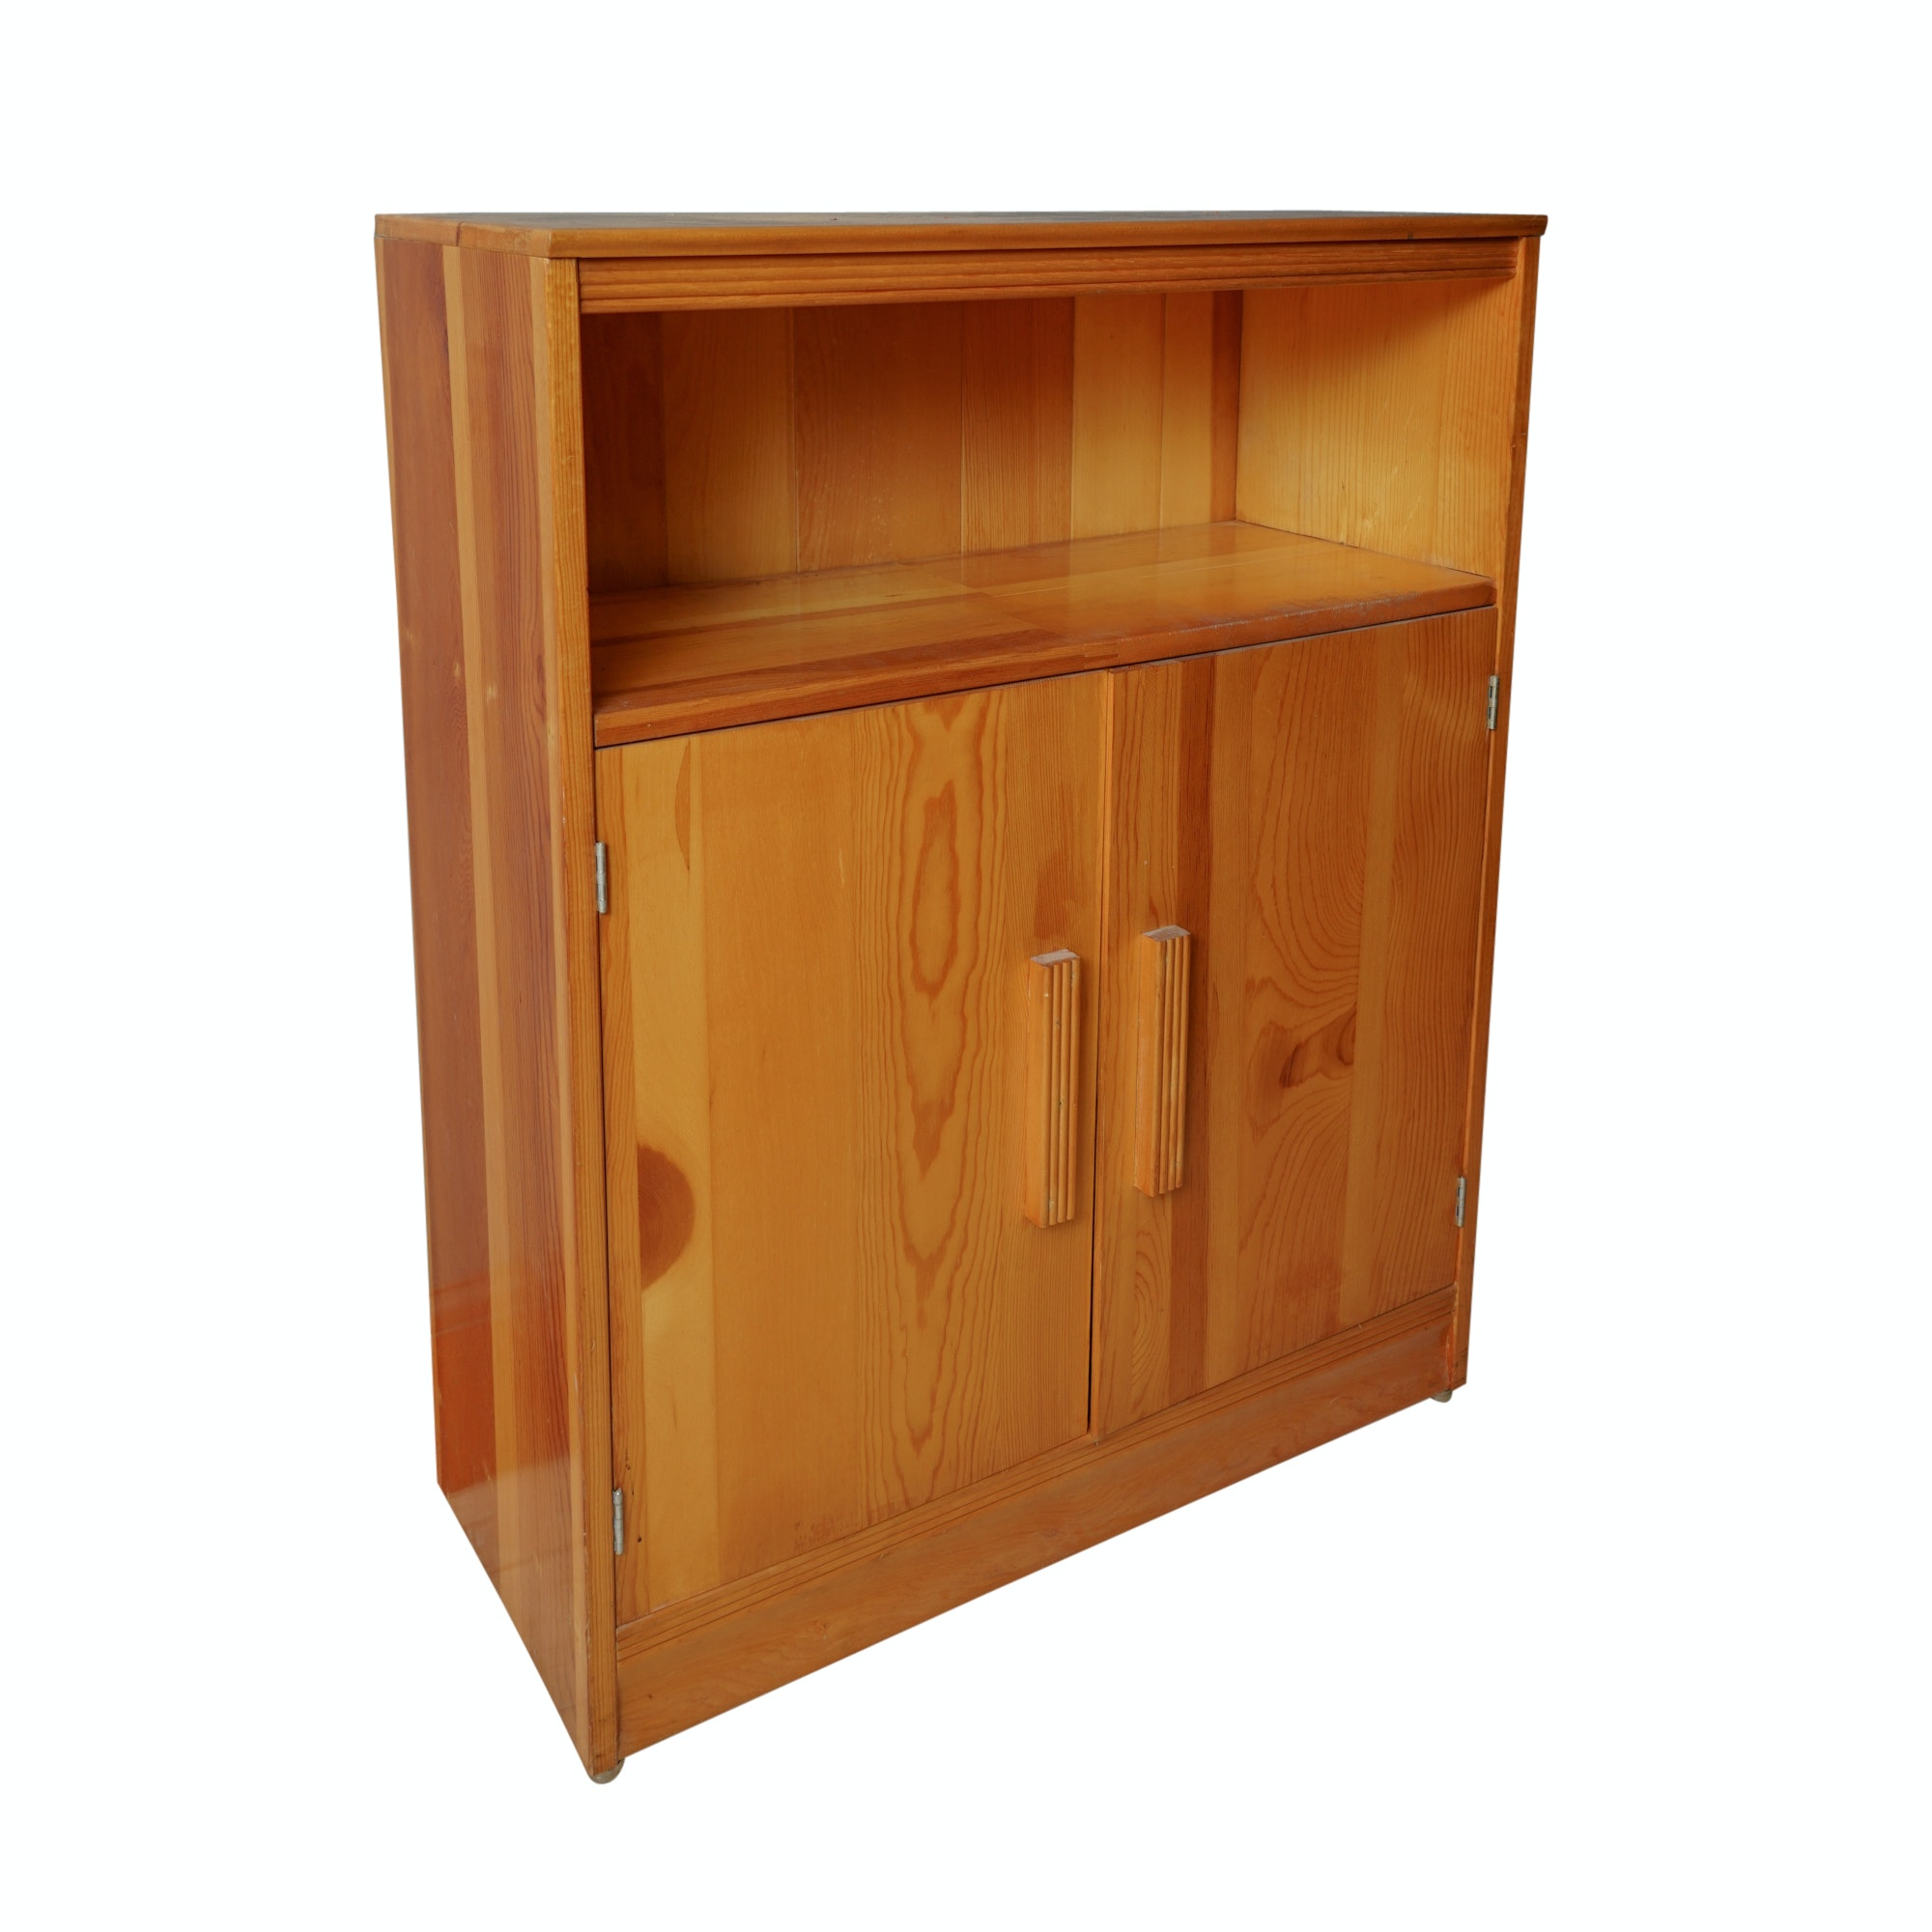 Contemporary Mixed Wood Cabinet